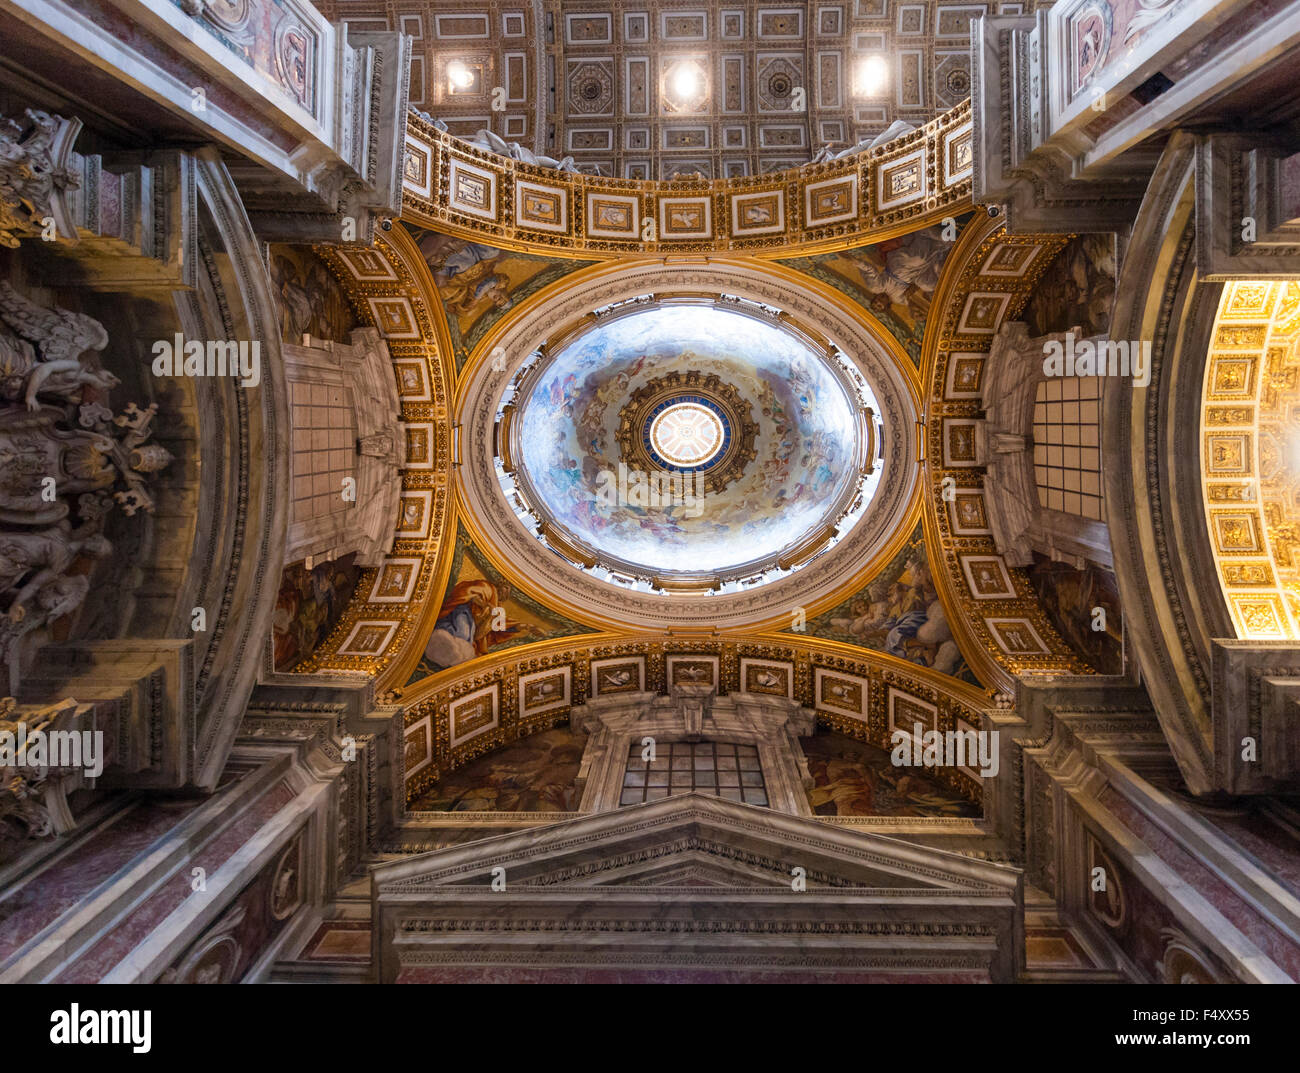 Interior of St. Peter's Basilica, Vatican: main dome above the chancel, seen from below Stock Photo